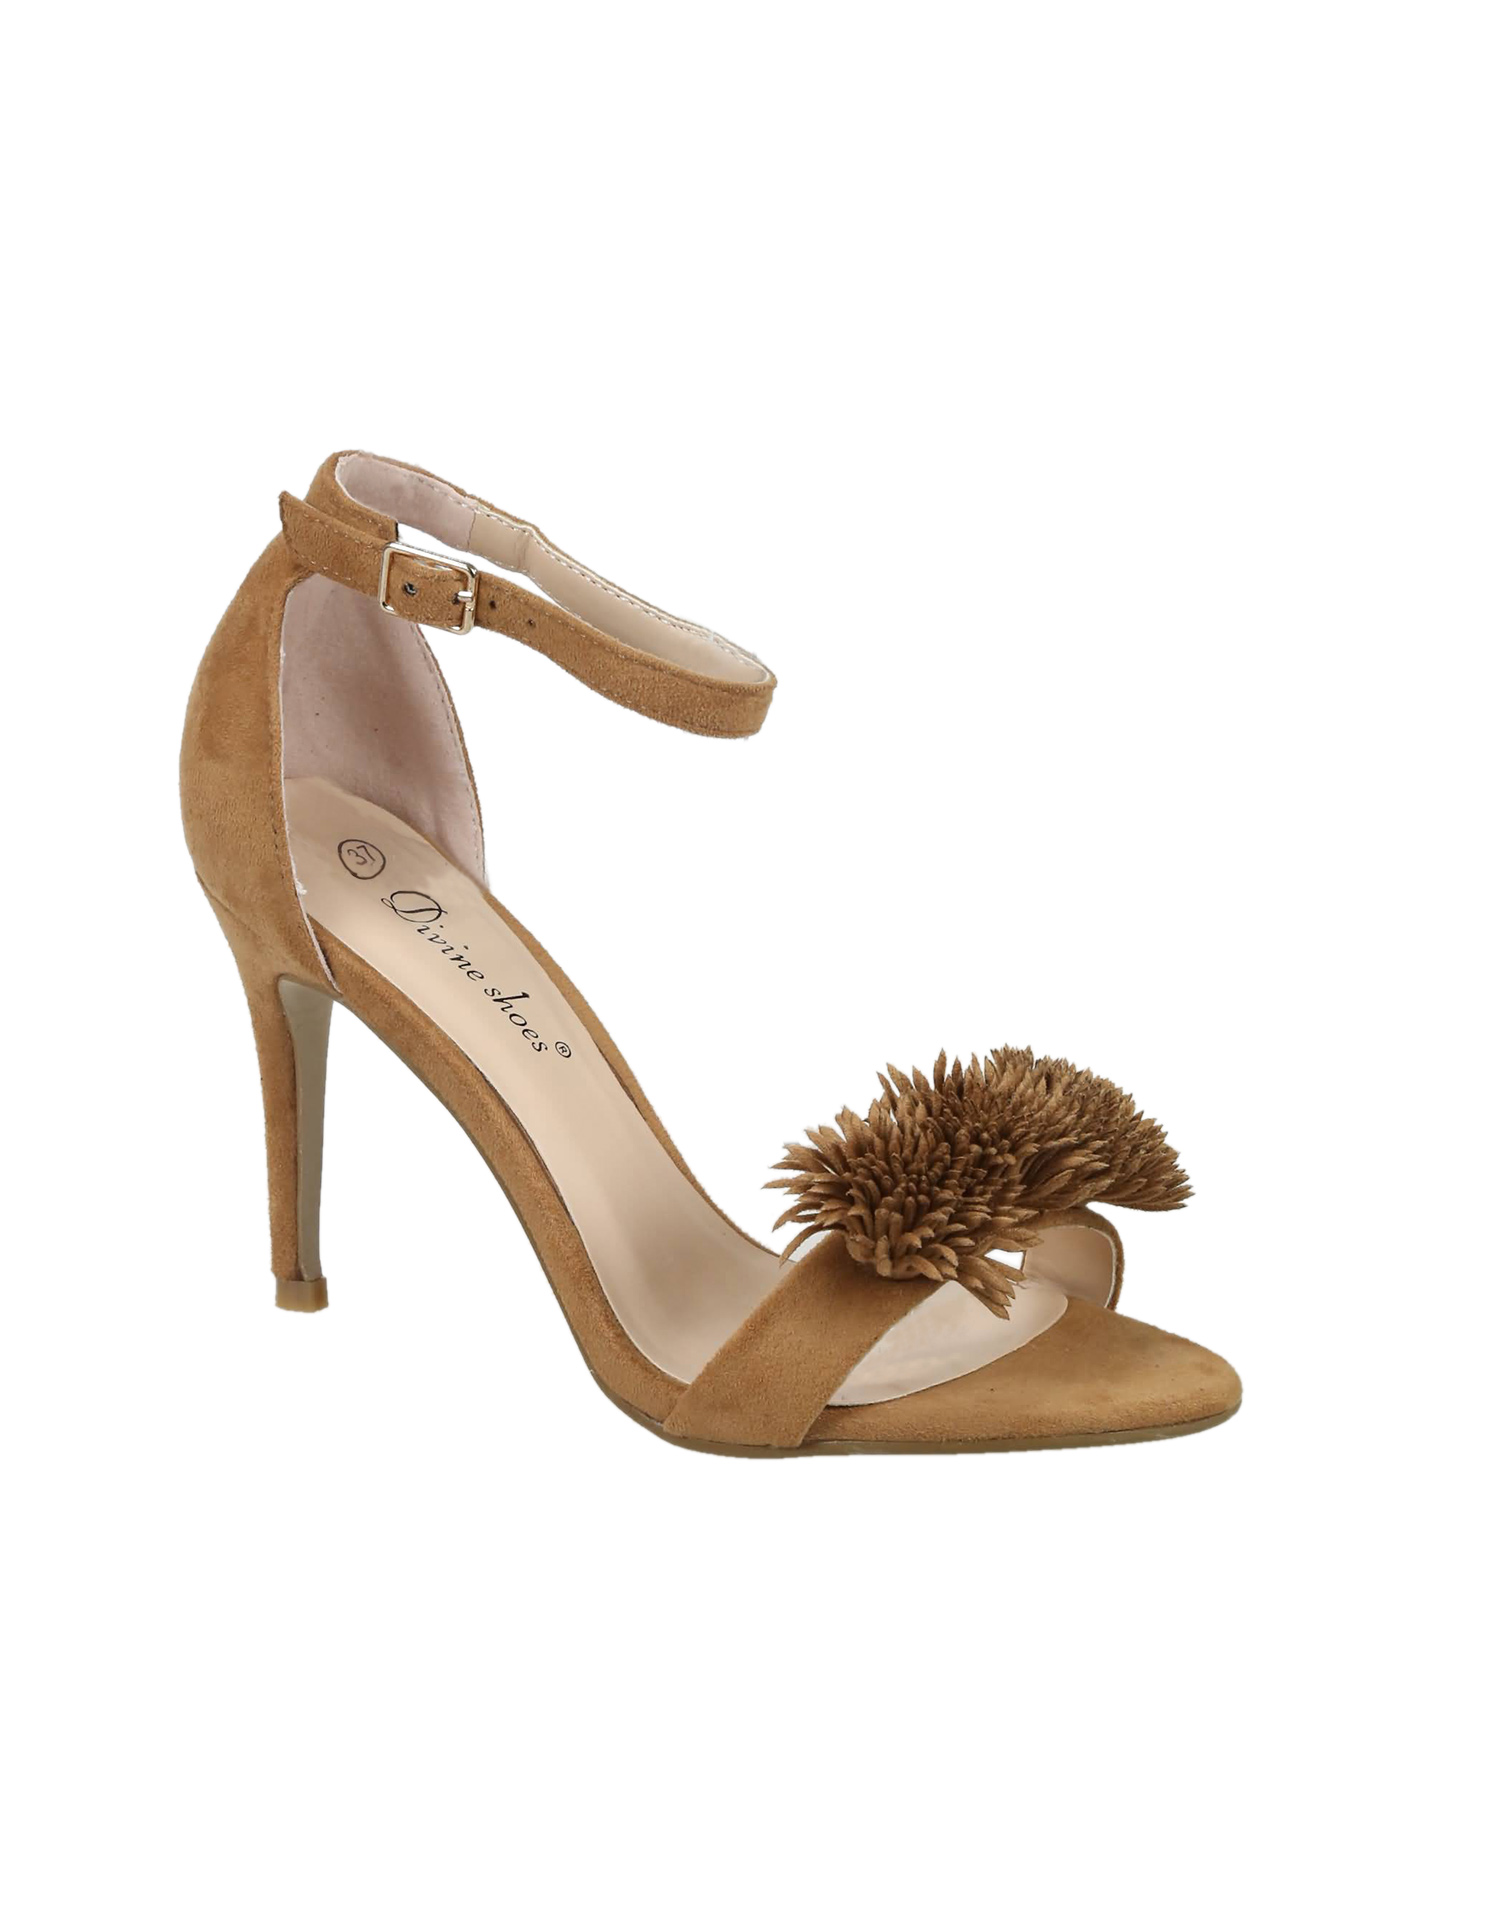 Miss Coquines - Sandales ? talons - Chaussures - Sandales - Sandales ? talons